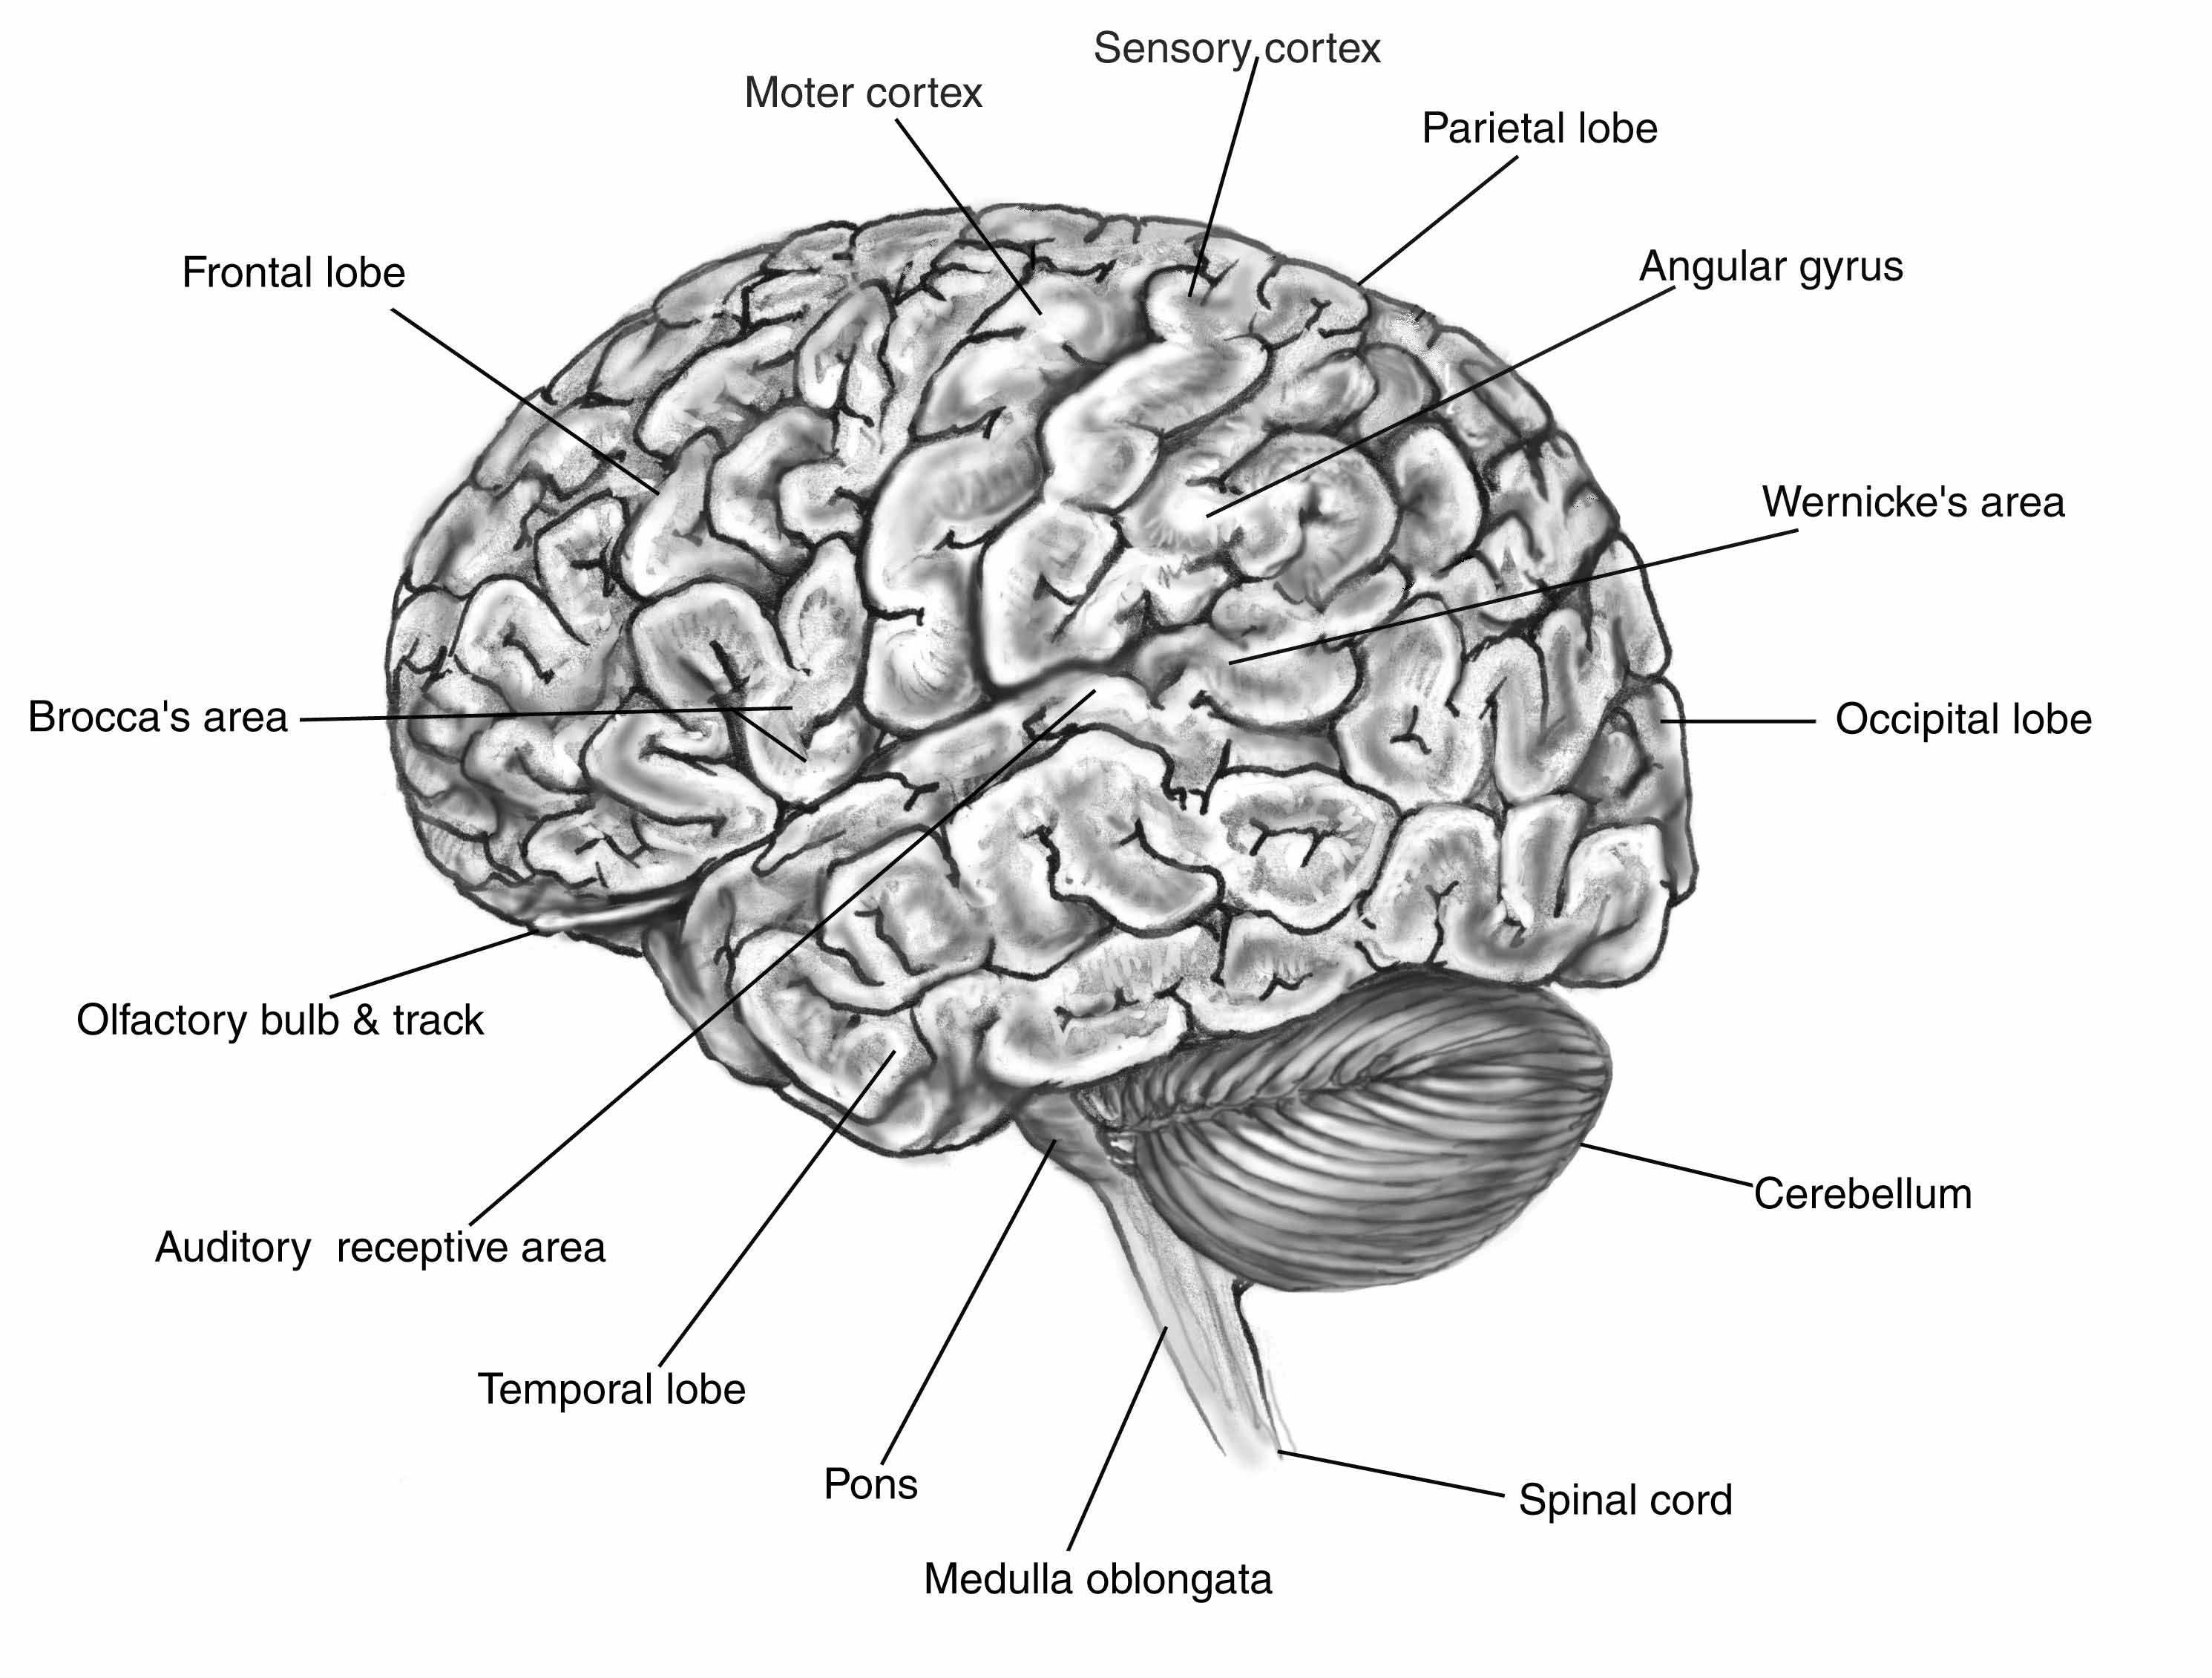 The Human Brain Diagram And Functions Koibana Info Brain Diagram Brain Parts And Functions Human Brain